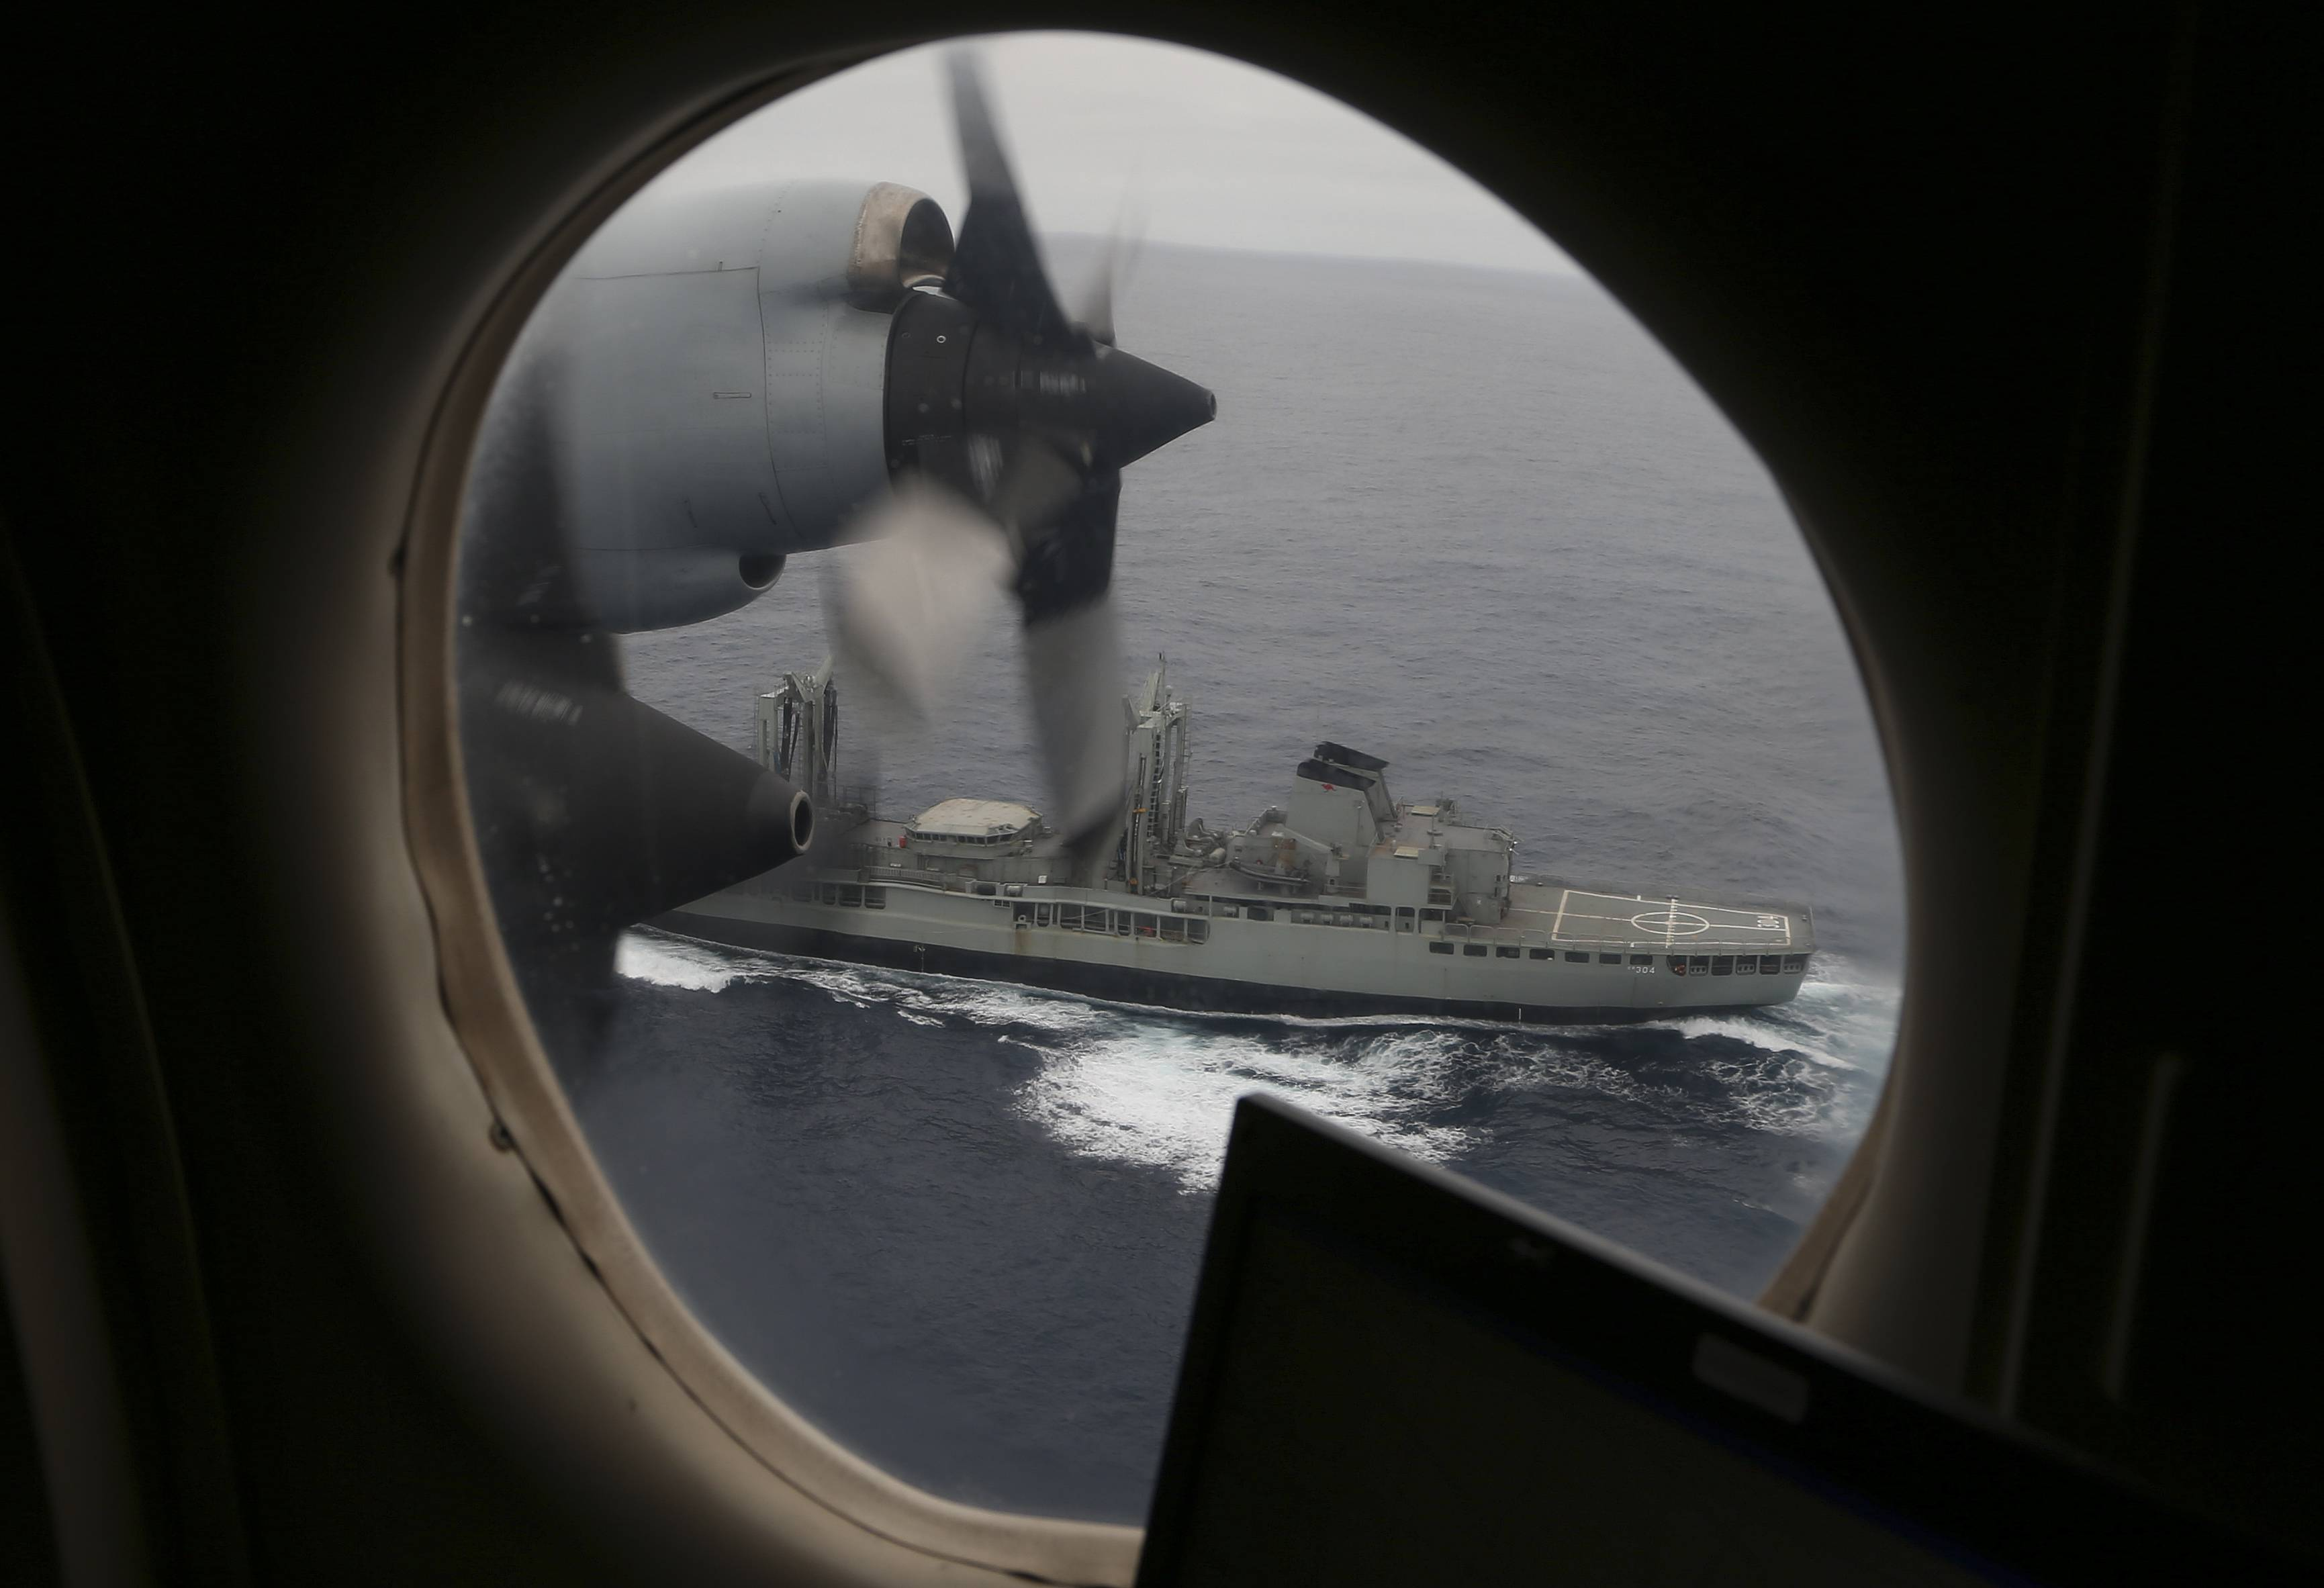 Australian Navy's HMAS Success, seen from the widow of a Royal Australian Air Force AP-3C Orion, searches Saturday for missing Malaysia Airlines flight MH370 in the southern Indian Ocean, Australia.